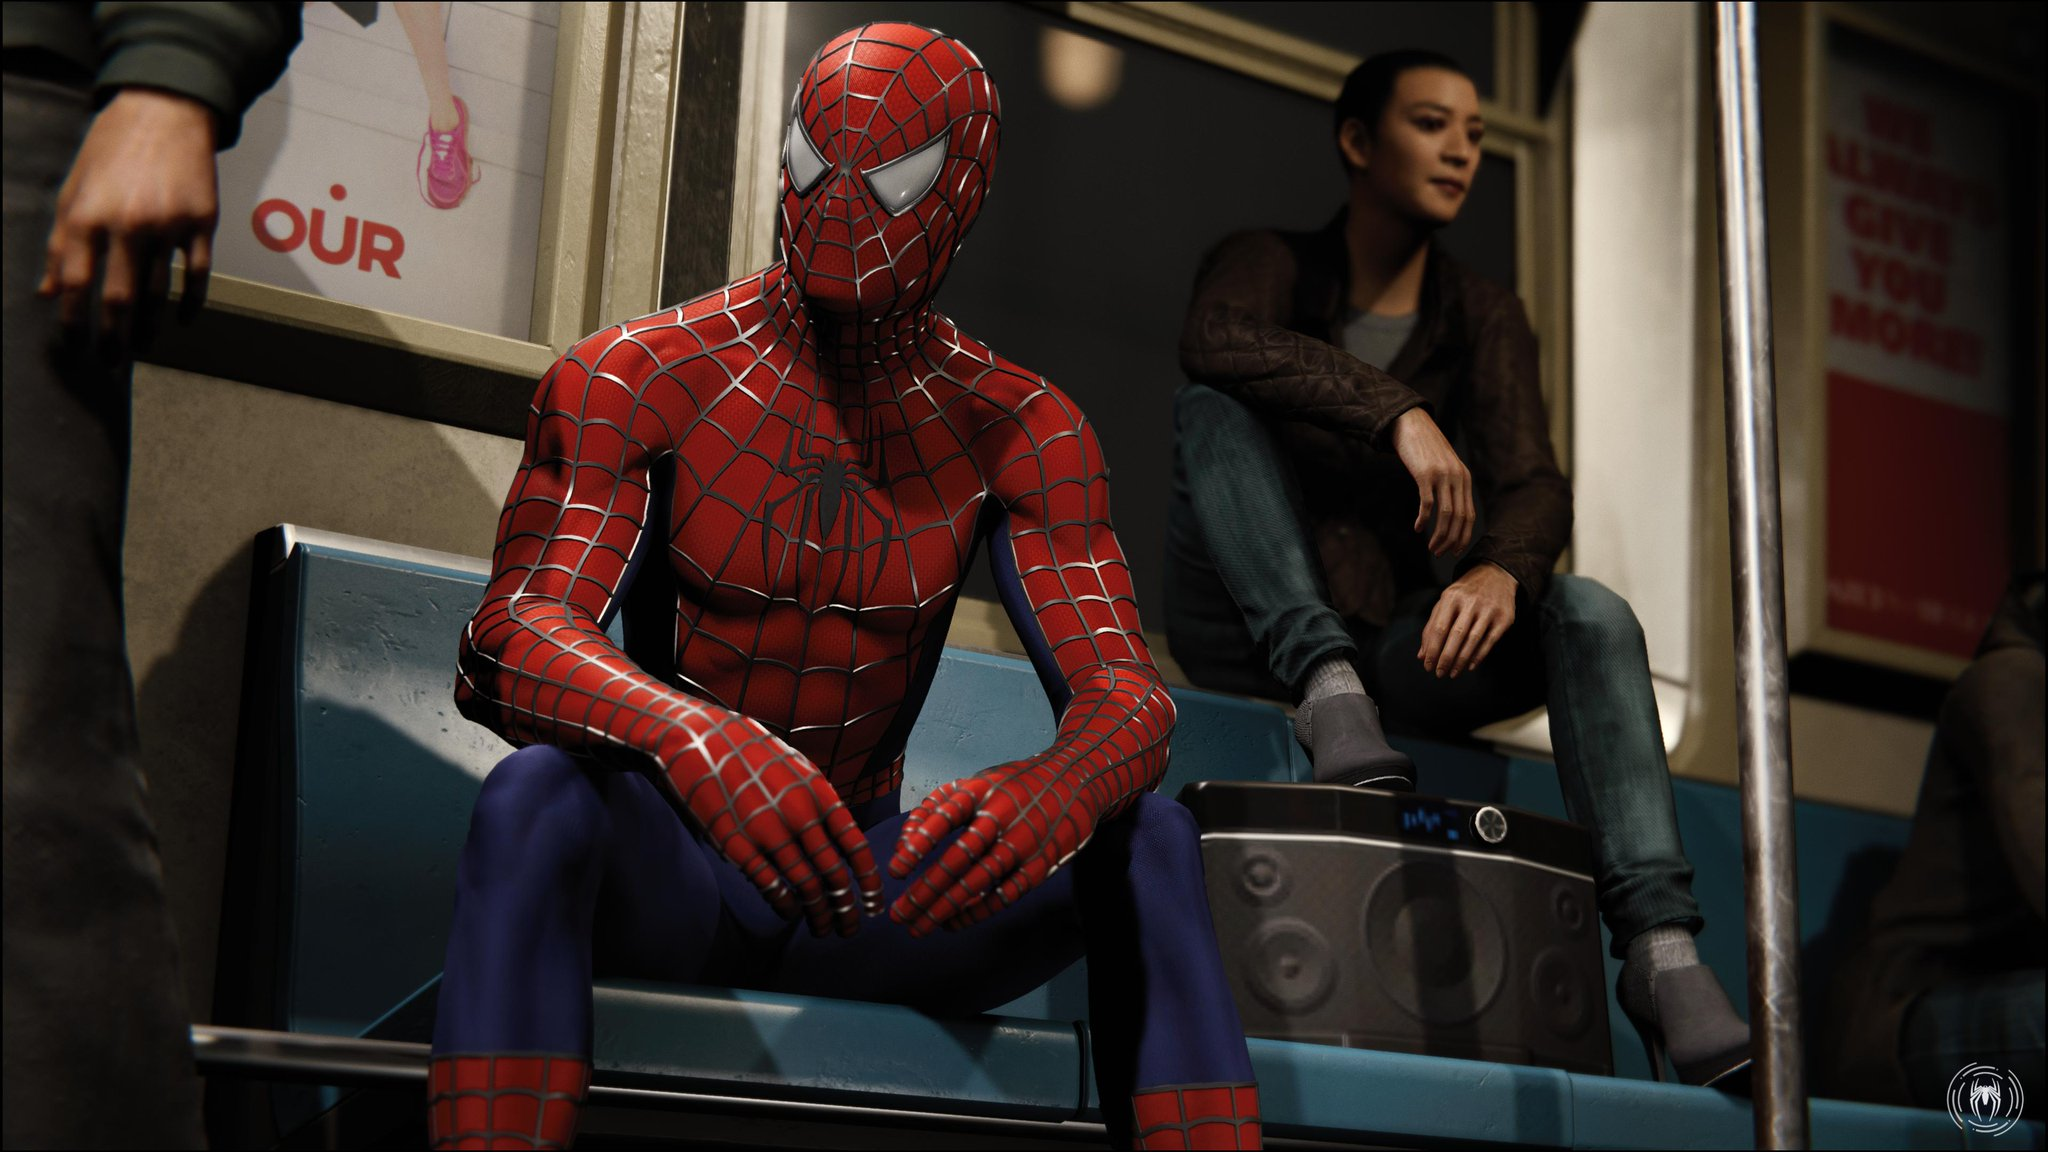 Raimi suit on the subway